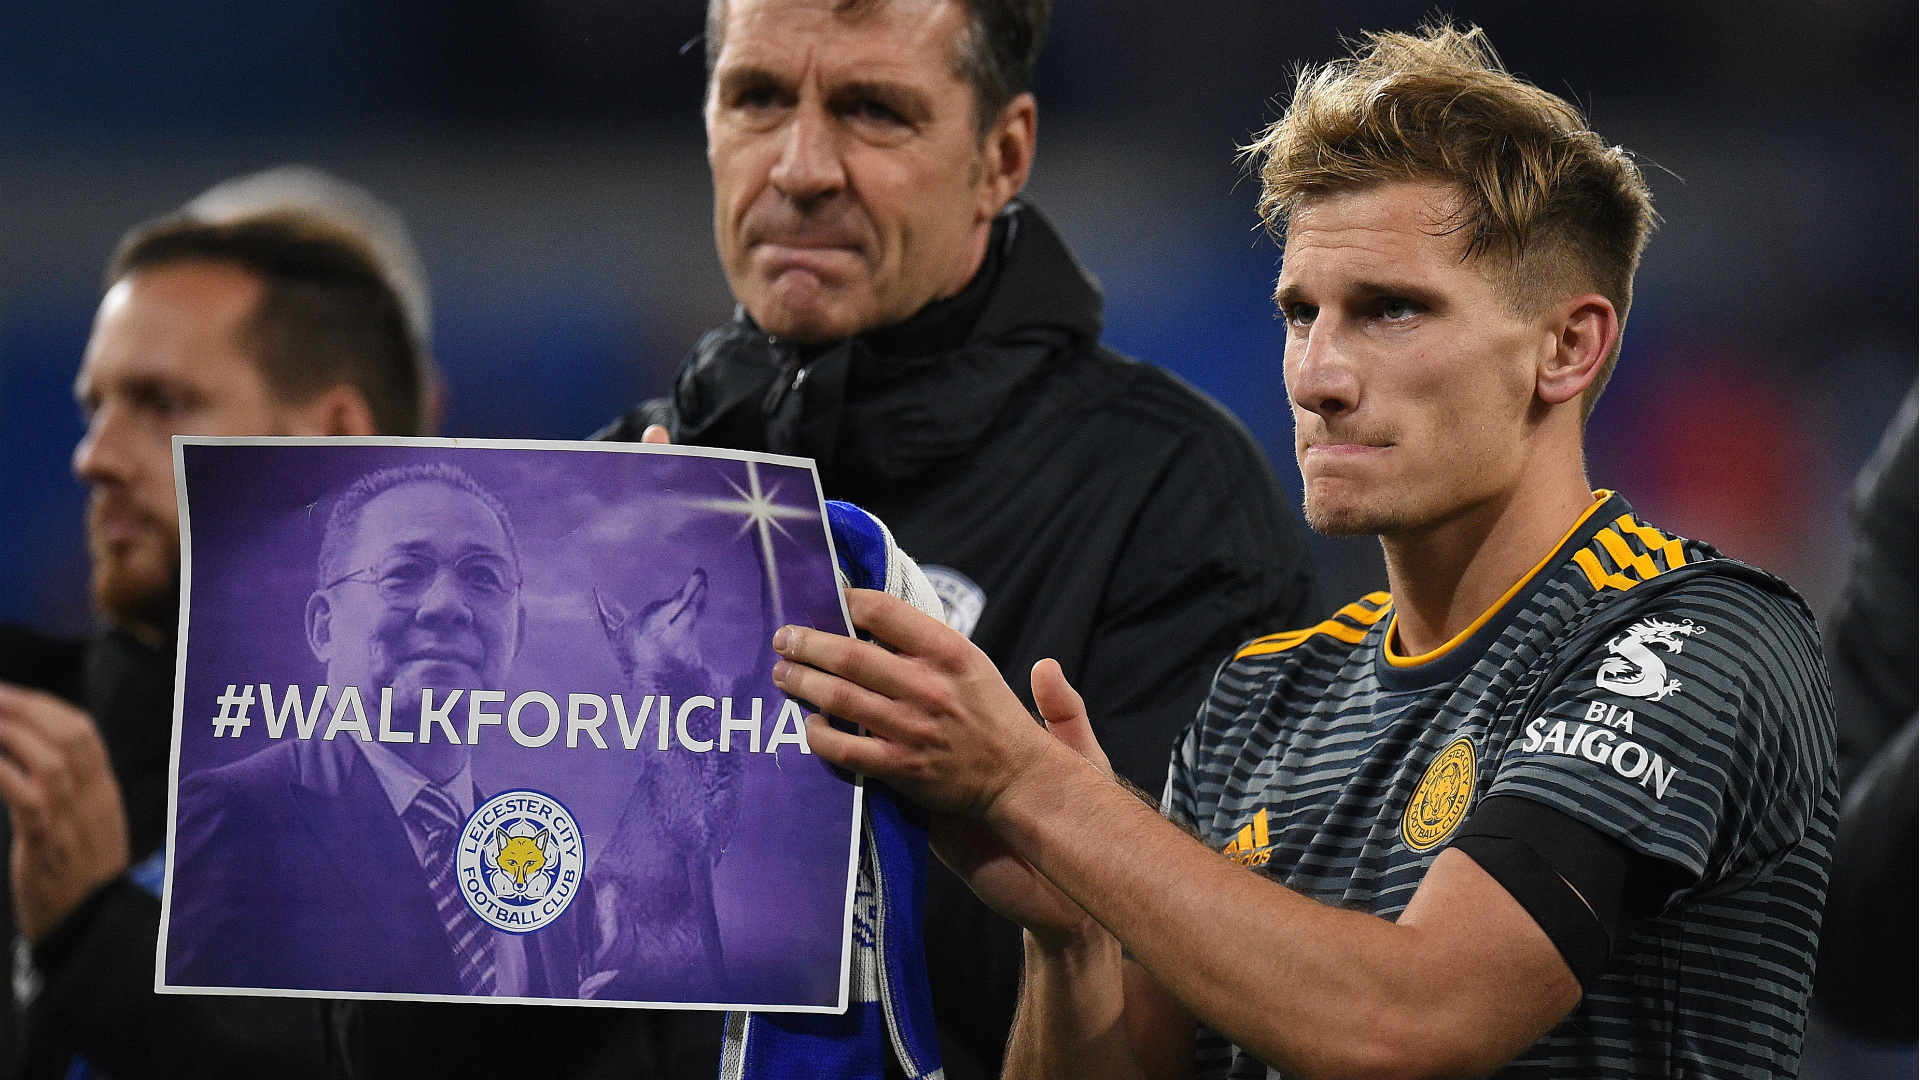 Leicester City tribute